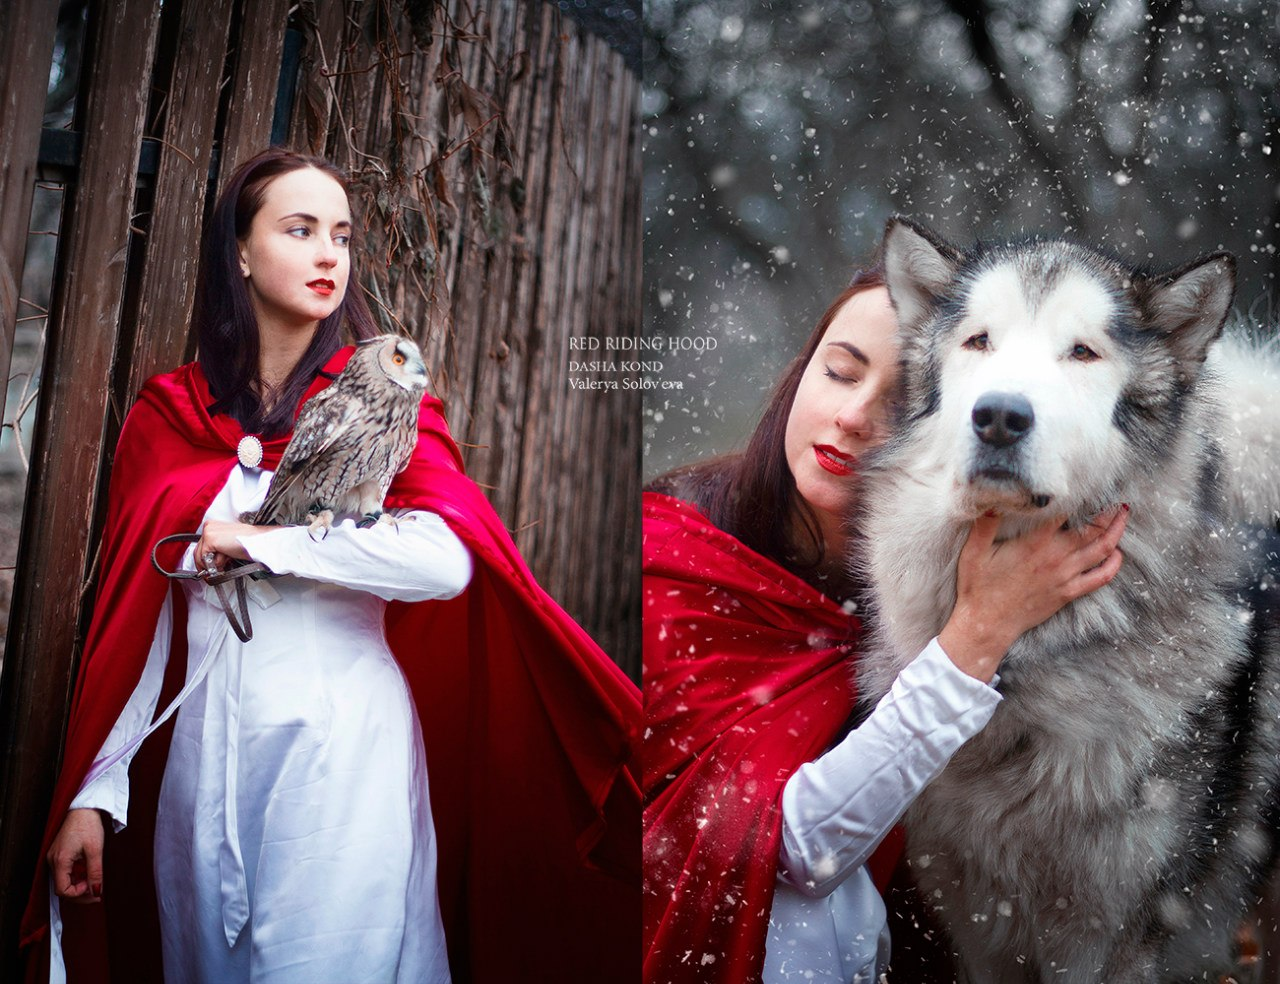 Photo : Darya Kondratyeva / Miracle / Chaperon Rouge